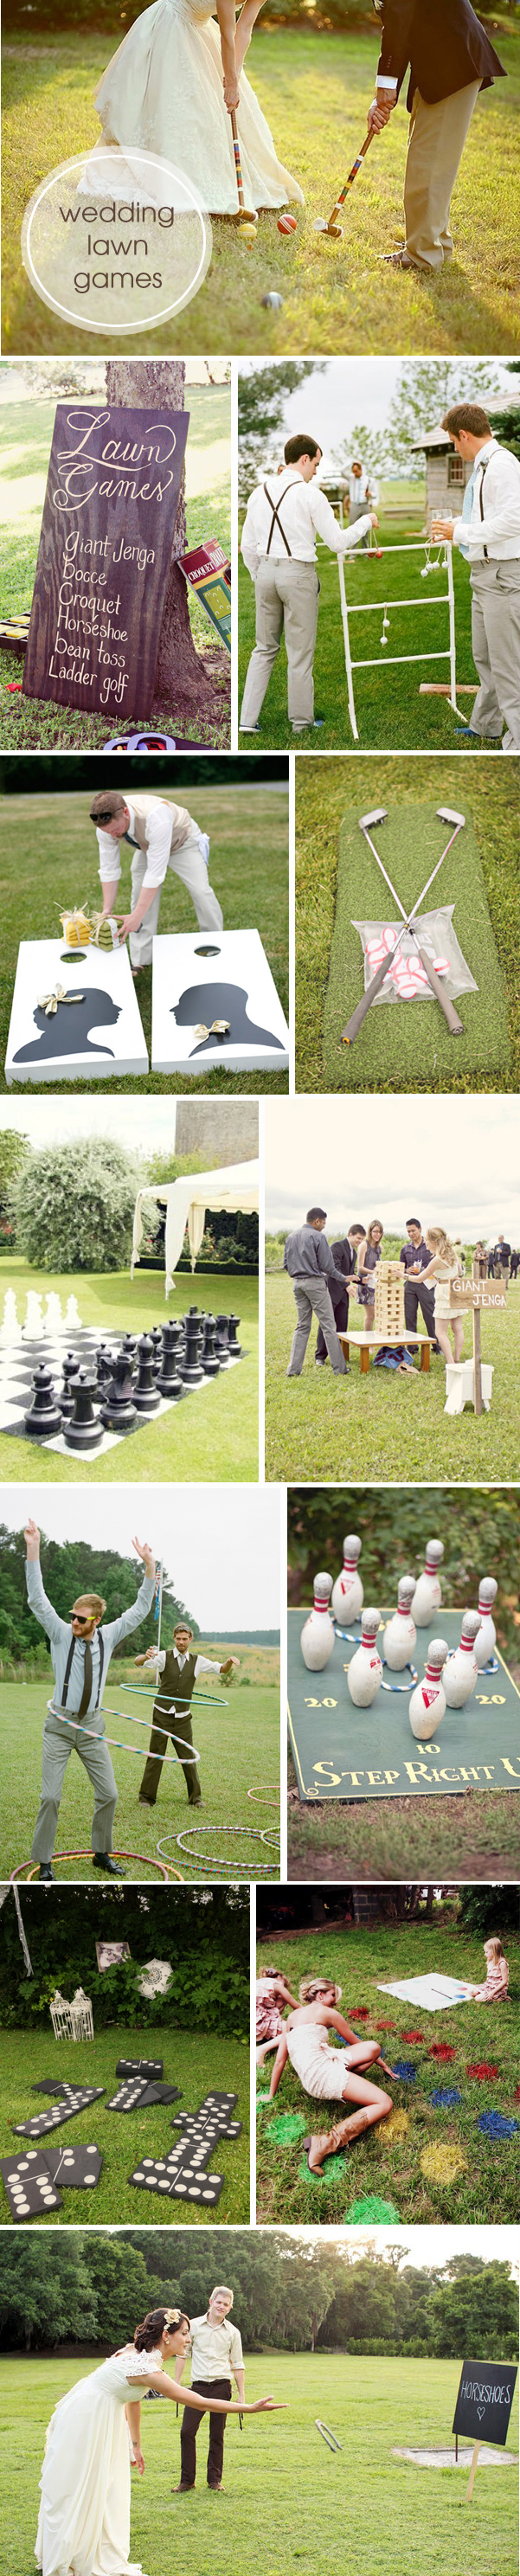 ST_wedding_lawn_games